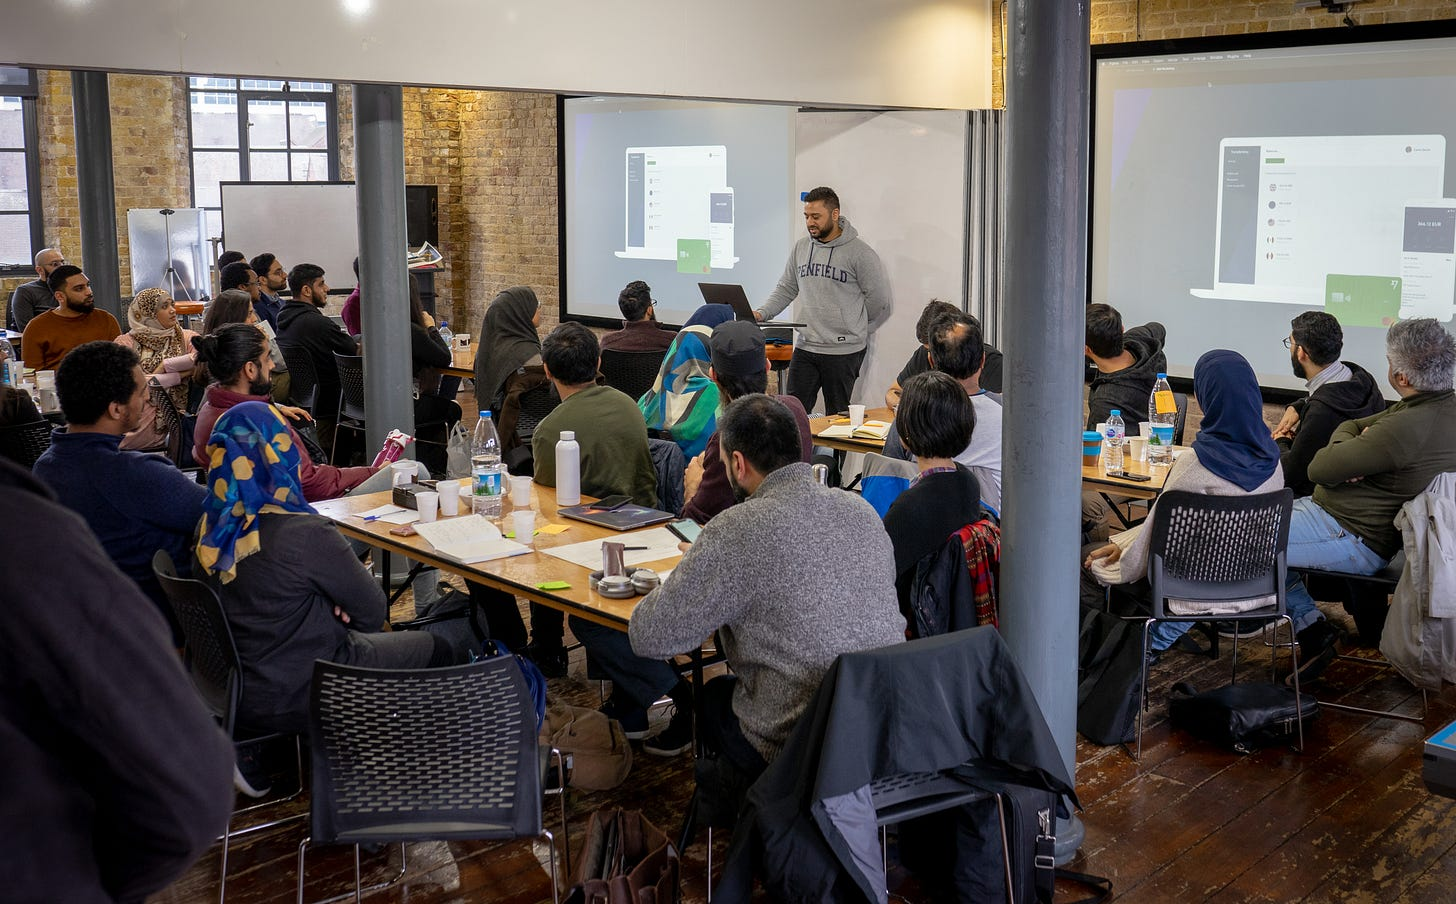 picture of guy with laptop teaching a class at a hackathon